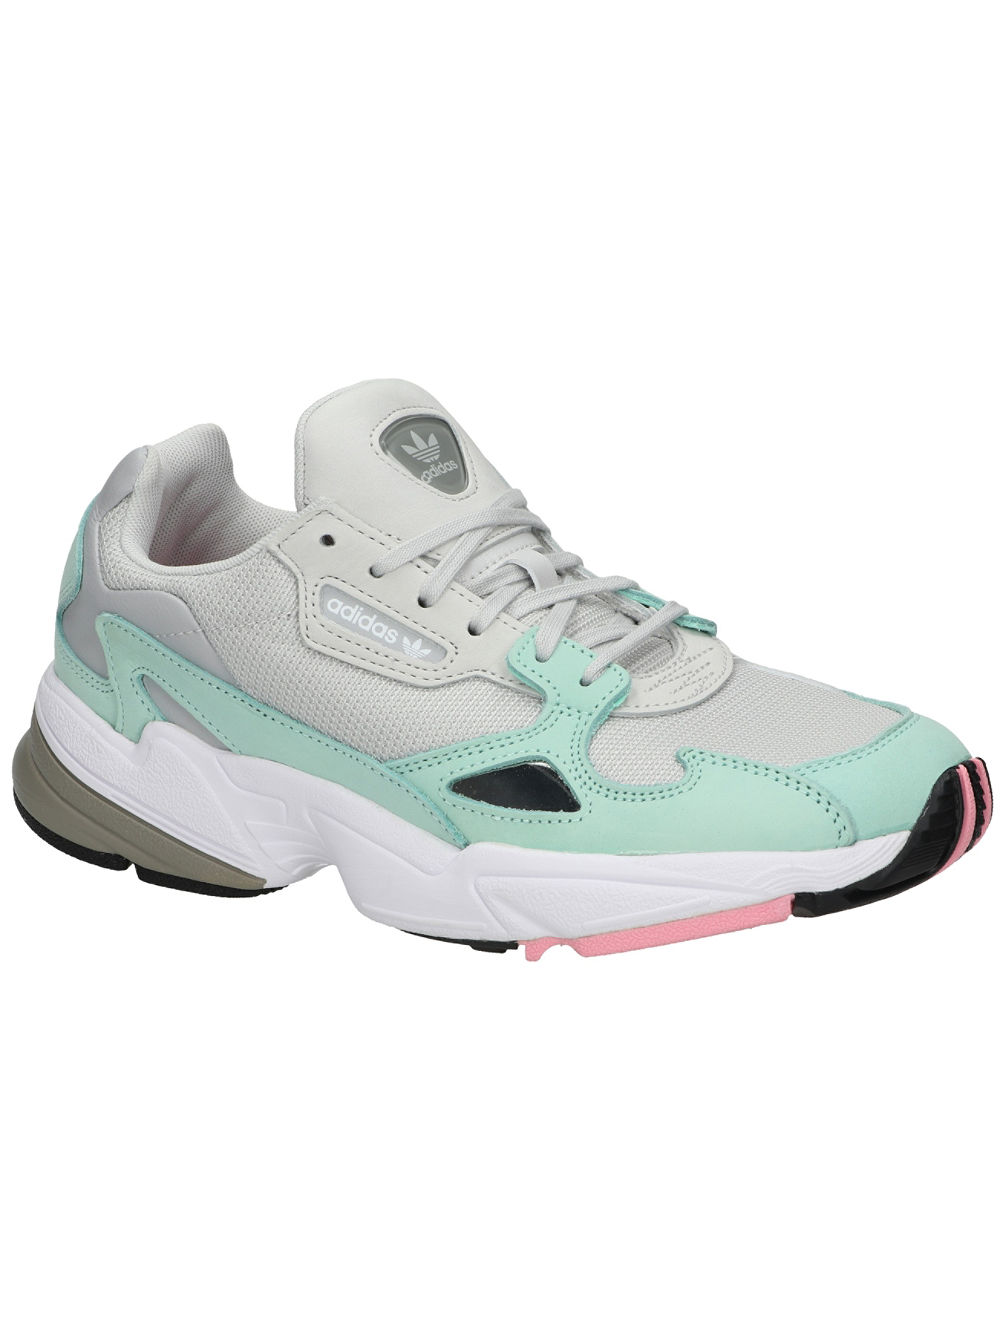 08702cca9e9d2 Buy adidas Originals Falcon Sneakers online at Blue Tomato